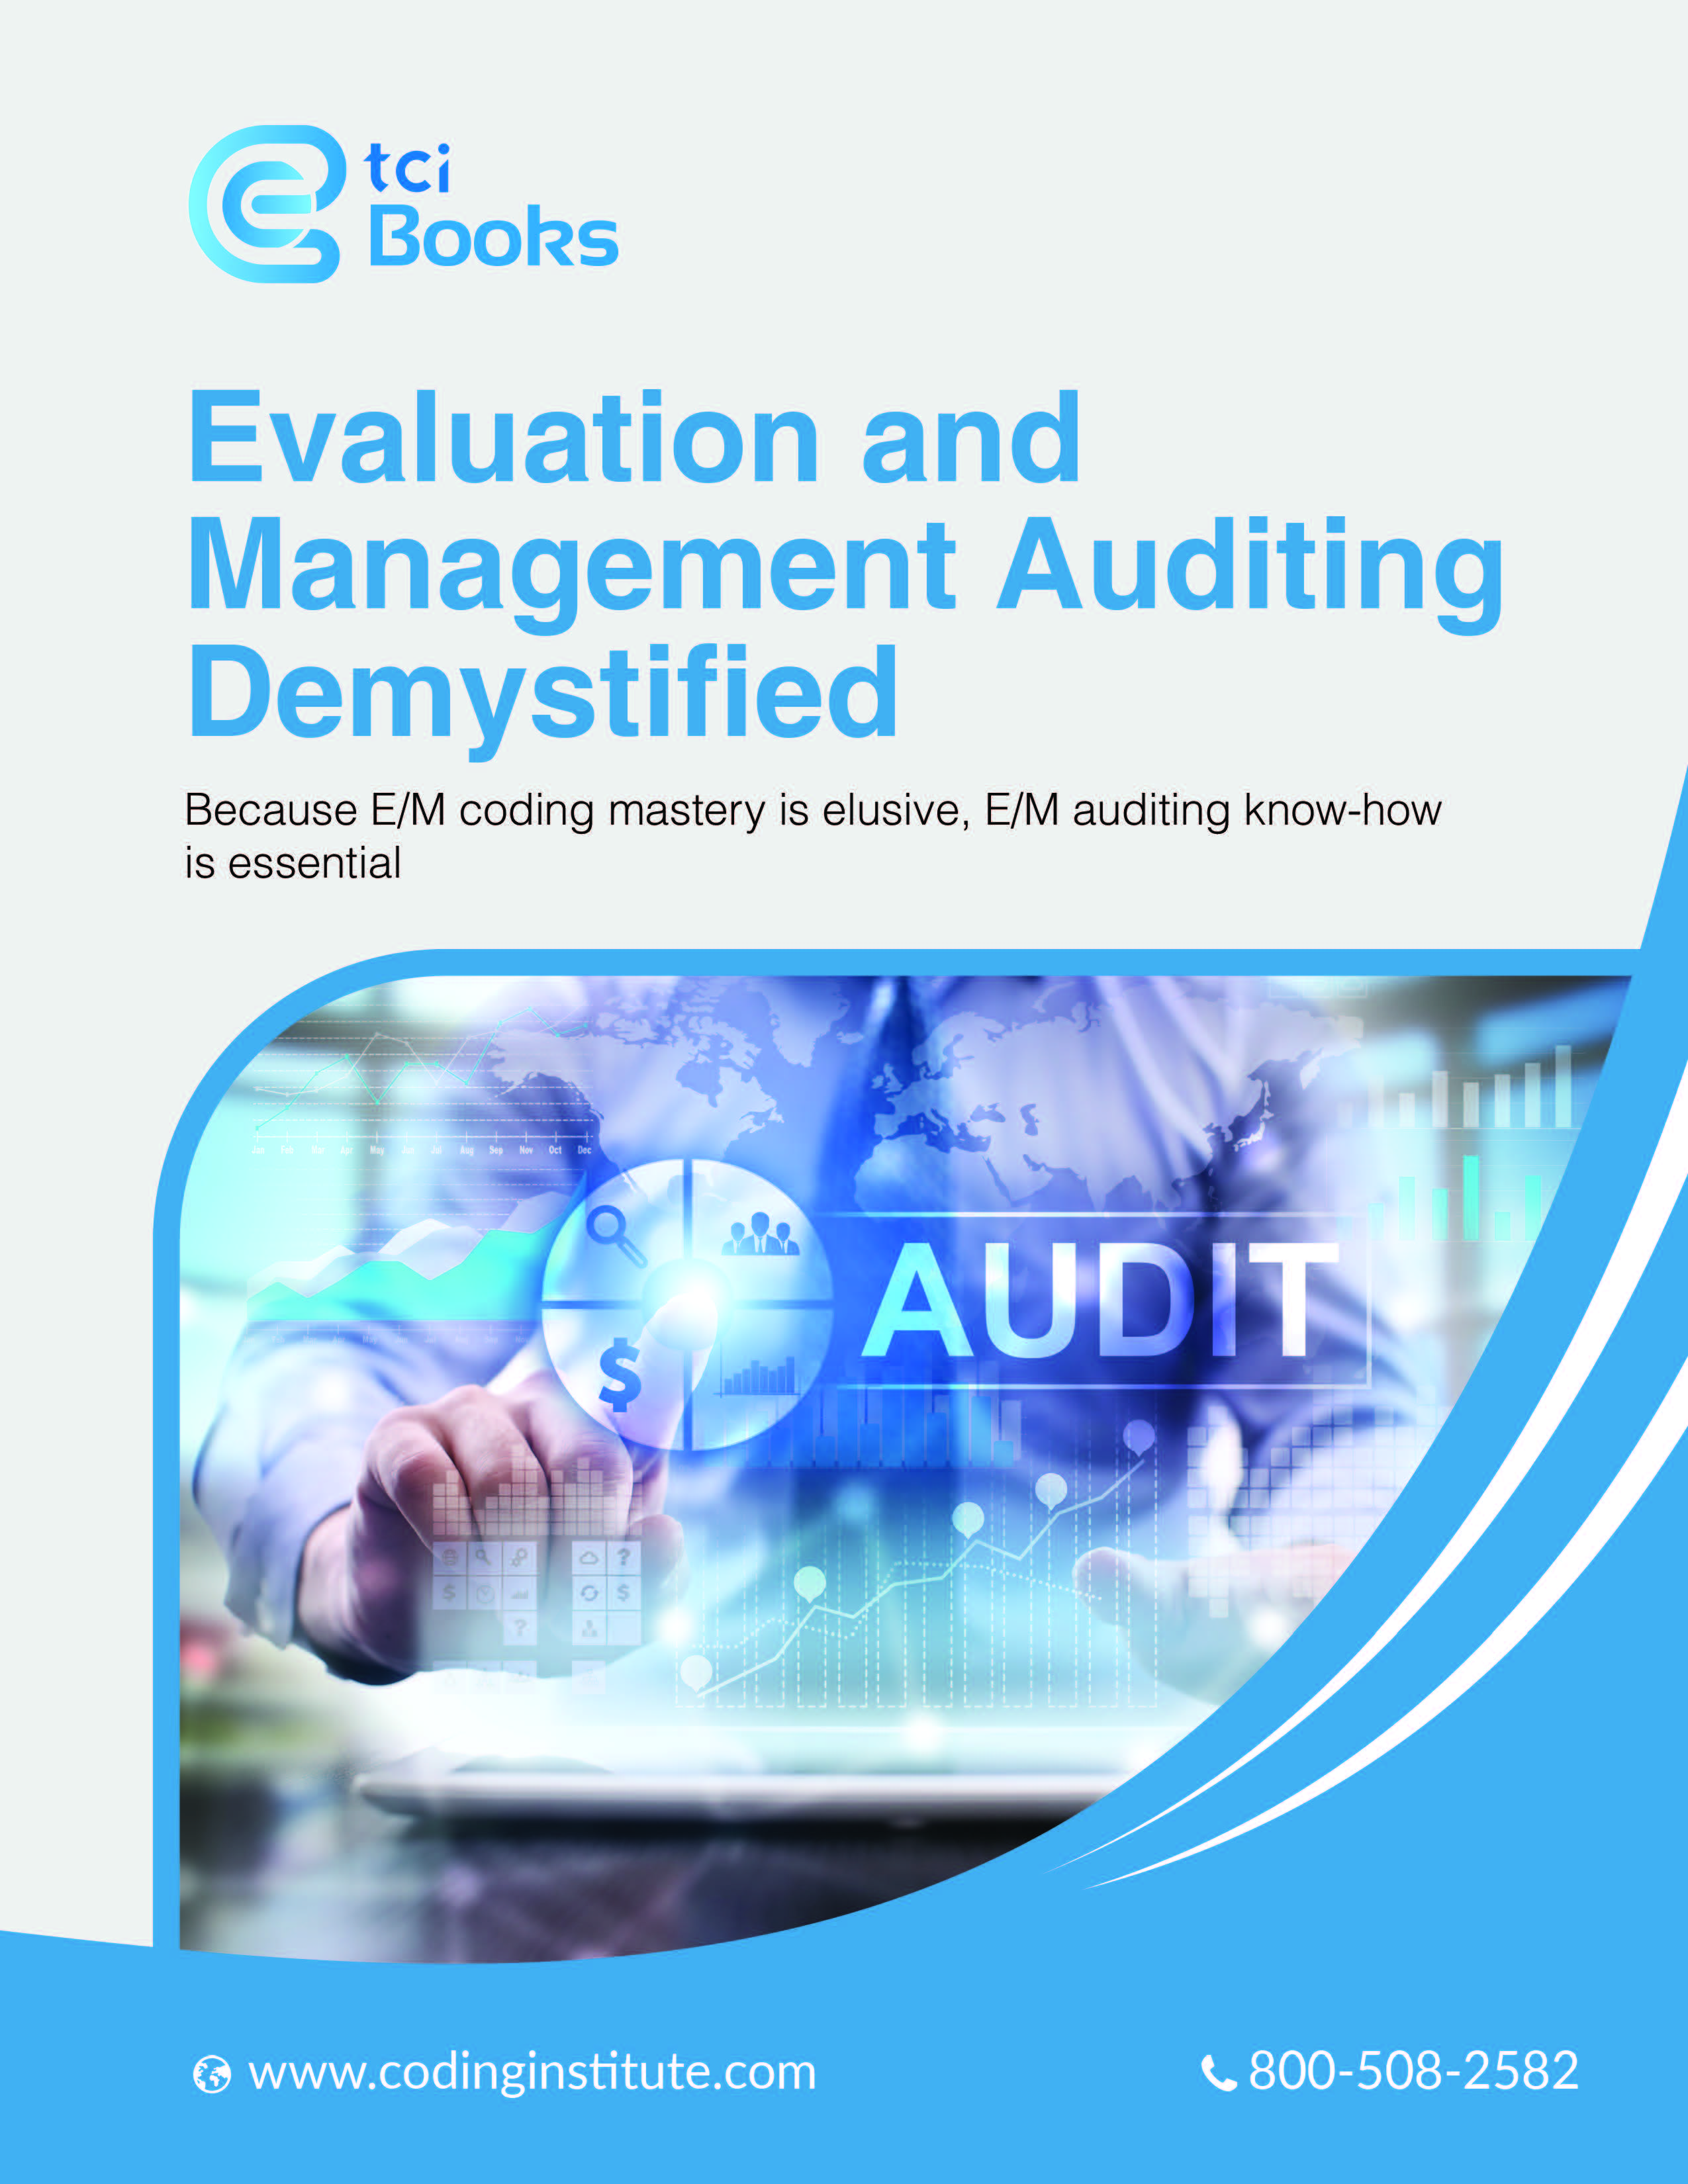 Vendor book store aapc evaluation and management auditing demystifiedtci publisher the coding institute llc isbn 978 1 63527 095 2 price 149 fandeluxe Image collections